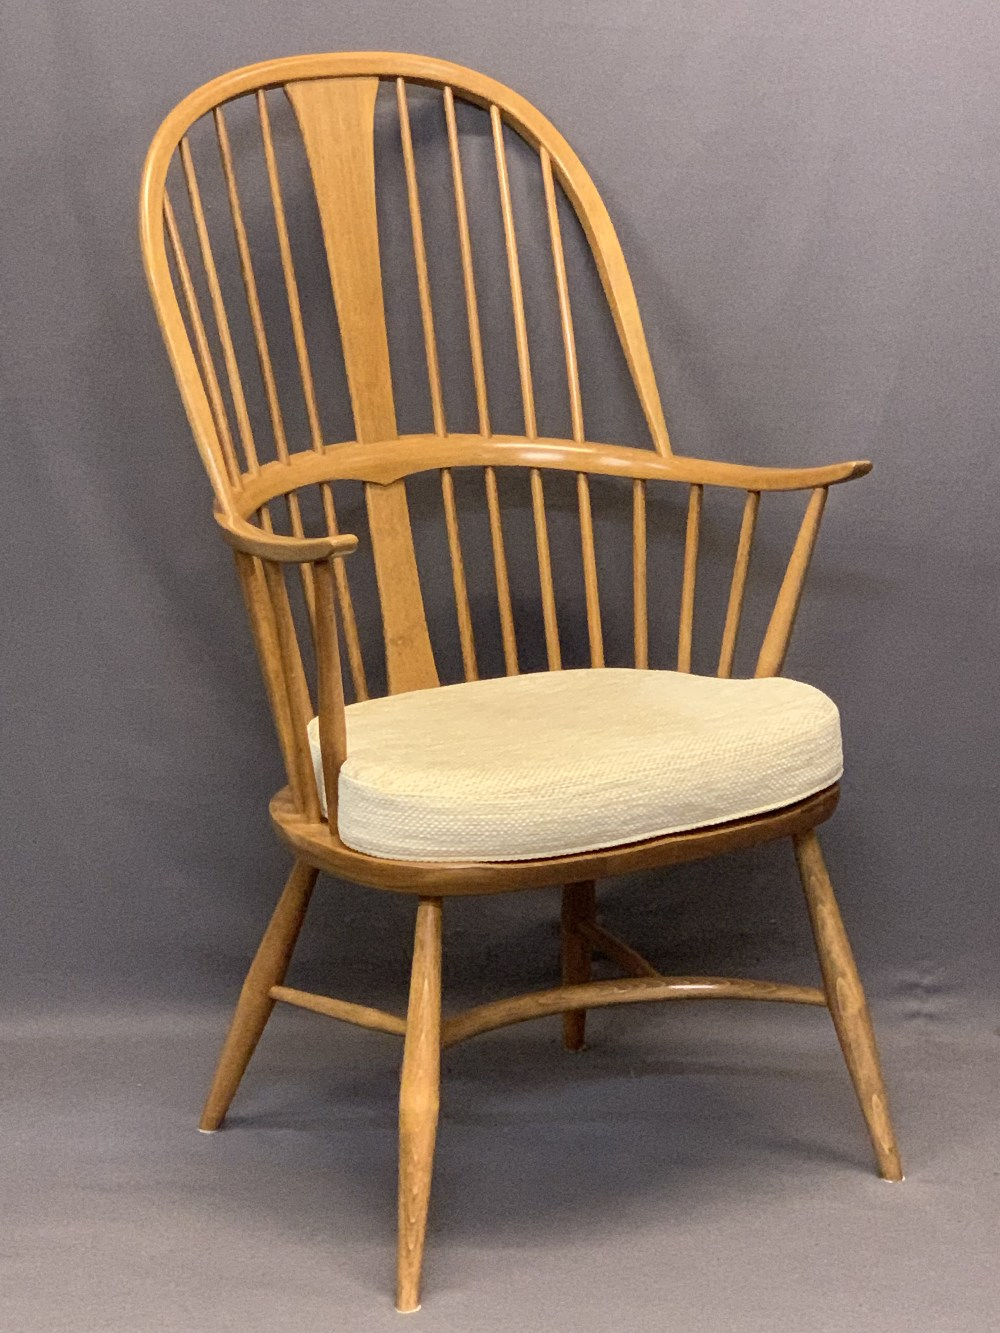 LIGHT ERCOL WINDSOR STYLE ARMCHAIR - with hoop back, crinoline type stretcher and removable